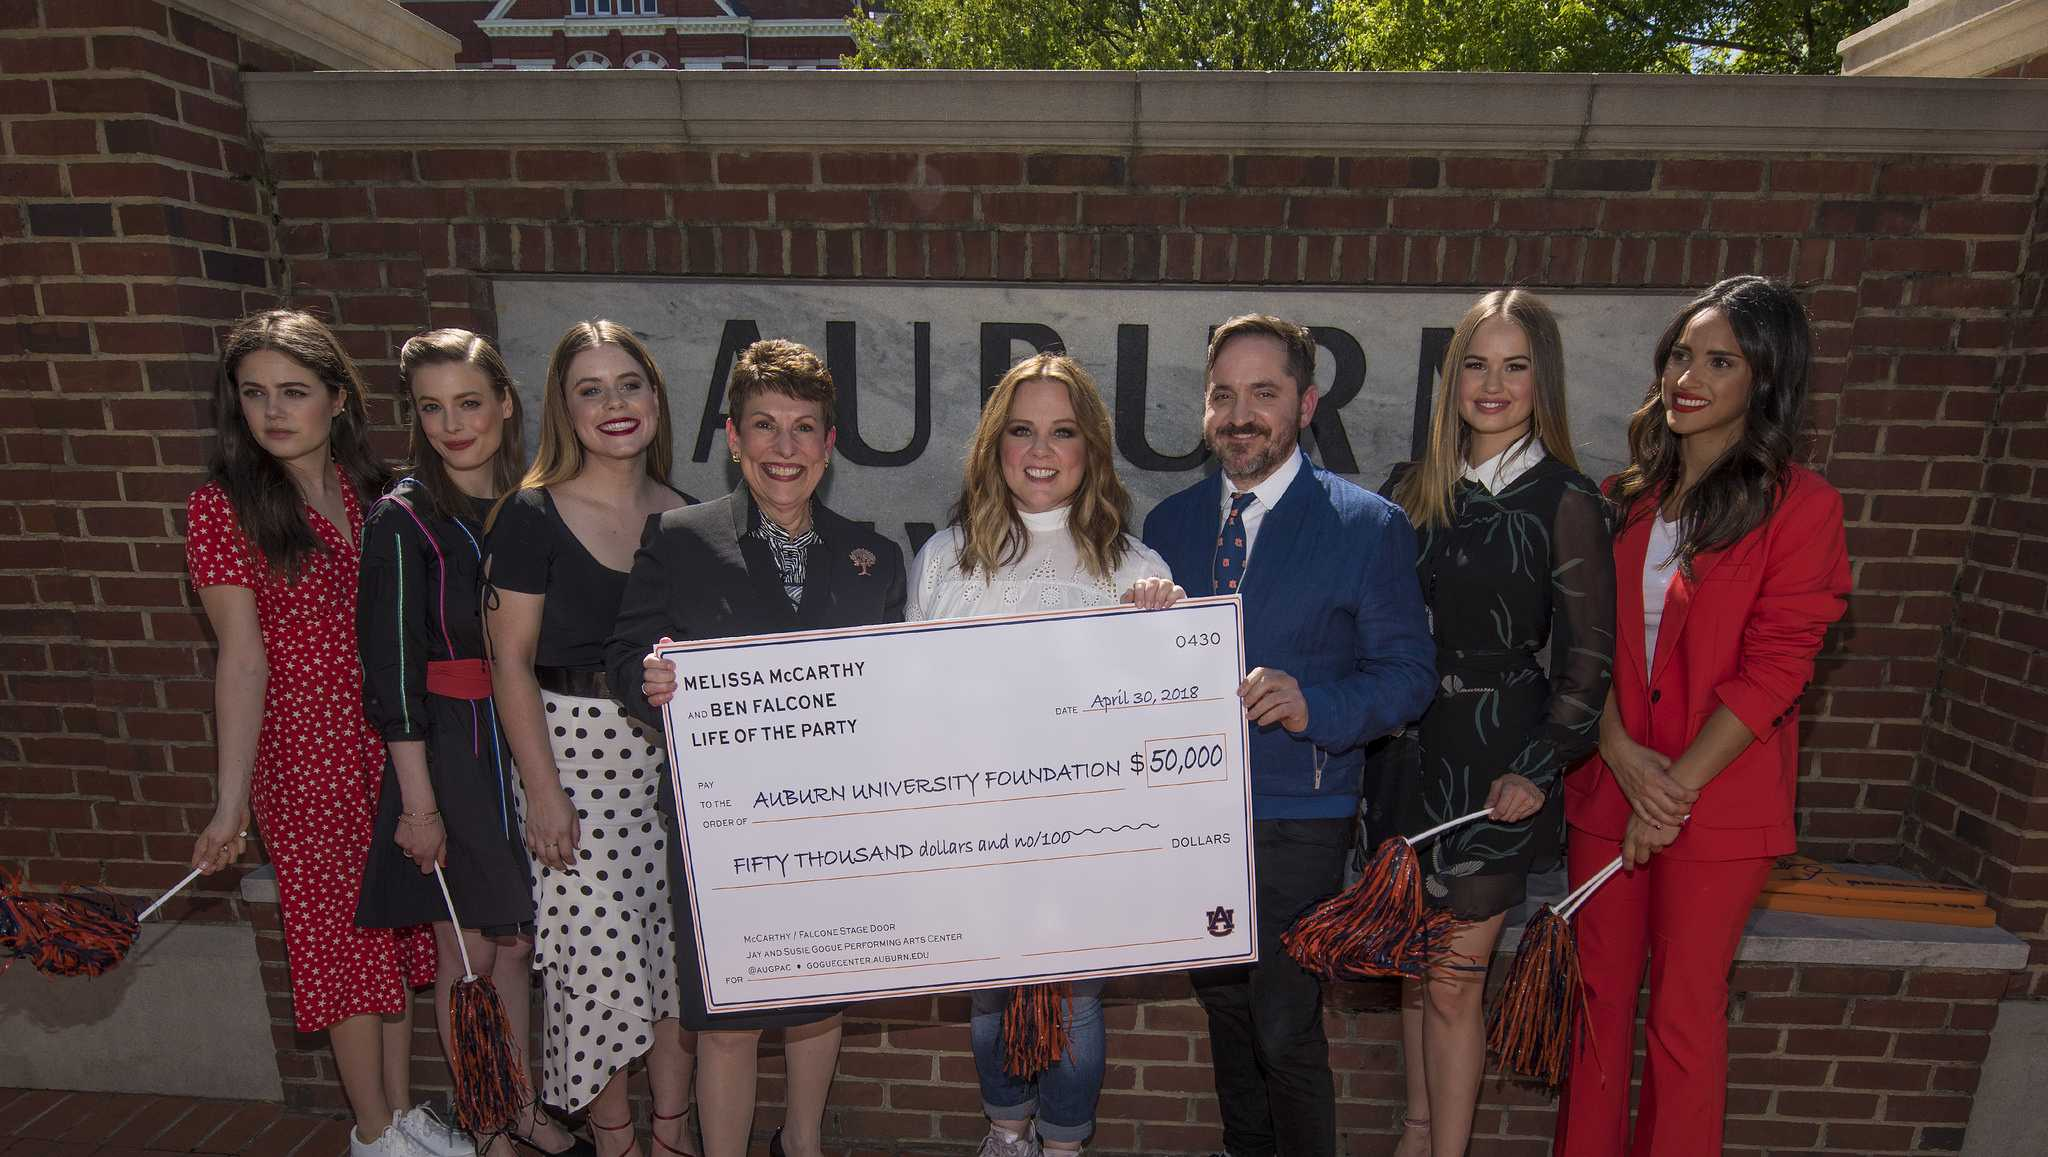 """Melissa McCarthy, center, and her husband Ben Falcone presented Auburn University with a check for $50,000 for the Jay and Susie Gogue Performing Arts Center. Pictured, from left, are Molly Gordon, Gillian Jacobs, Jessie Ennis, Vice President of Development and President of the Auburn University Foundation Jane DiFolco Parker, McCarthy, Falcone, Debby Ryan and Adria Arjona. The actors were in Lee County April 30 for the premiere of """"Life of the Party."""""""